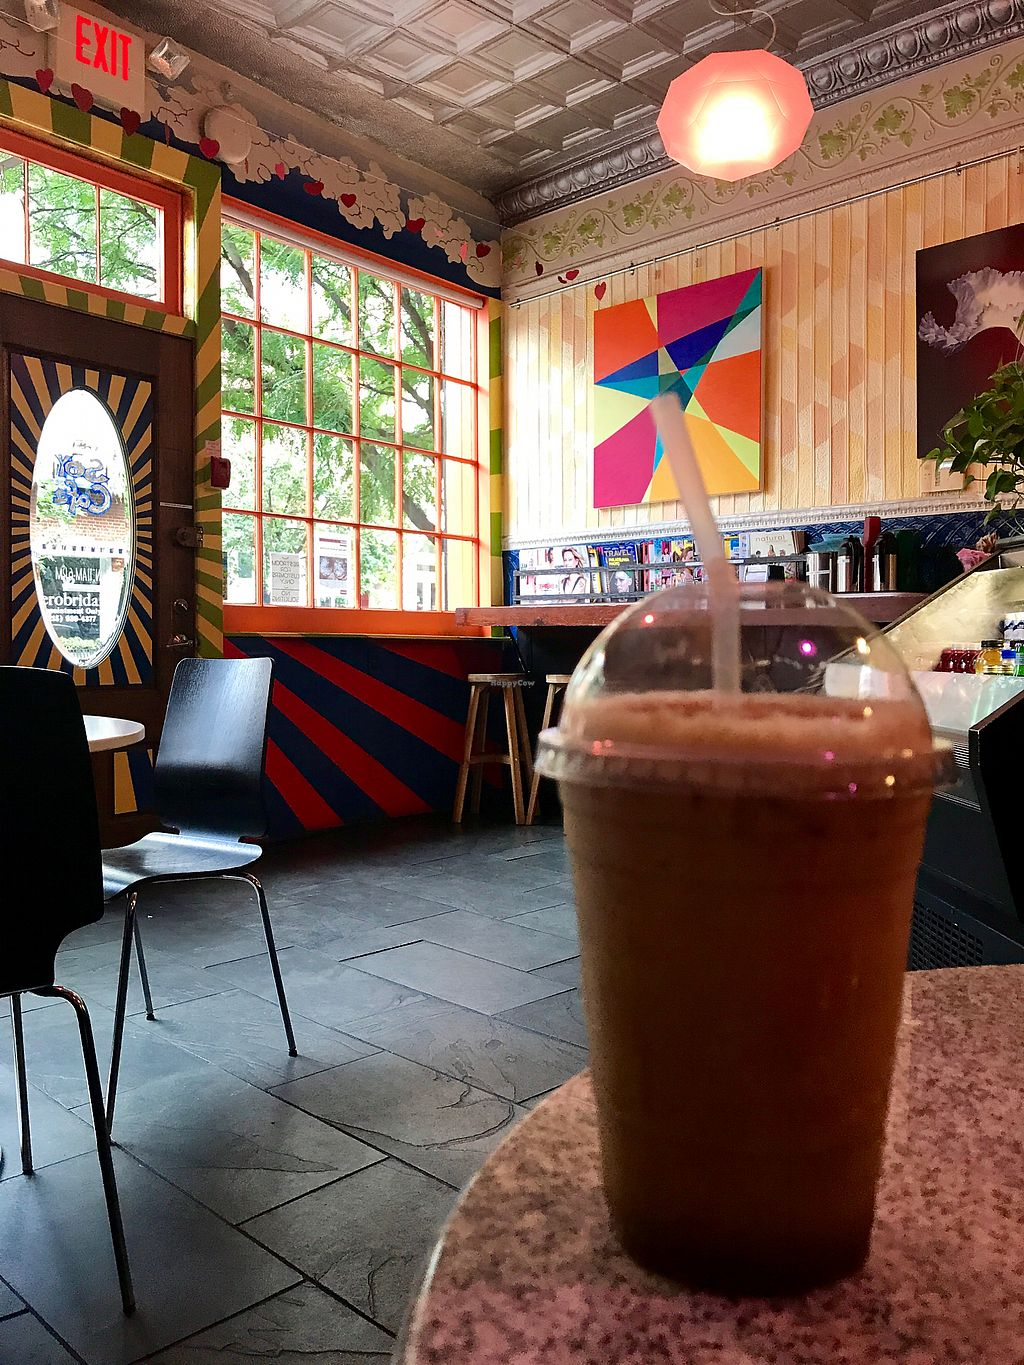 "Photo of Soy Cafe  by <a href=""/members/profile/alysescotti"">alysescotti</a> <br/>☕️ <br/> August 19, 2017  - <a href='/contact/abuse/image/6569/294327'>Report</a>"